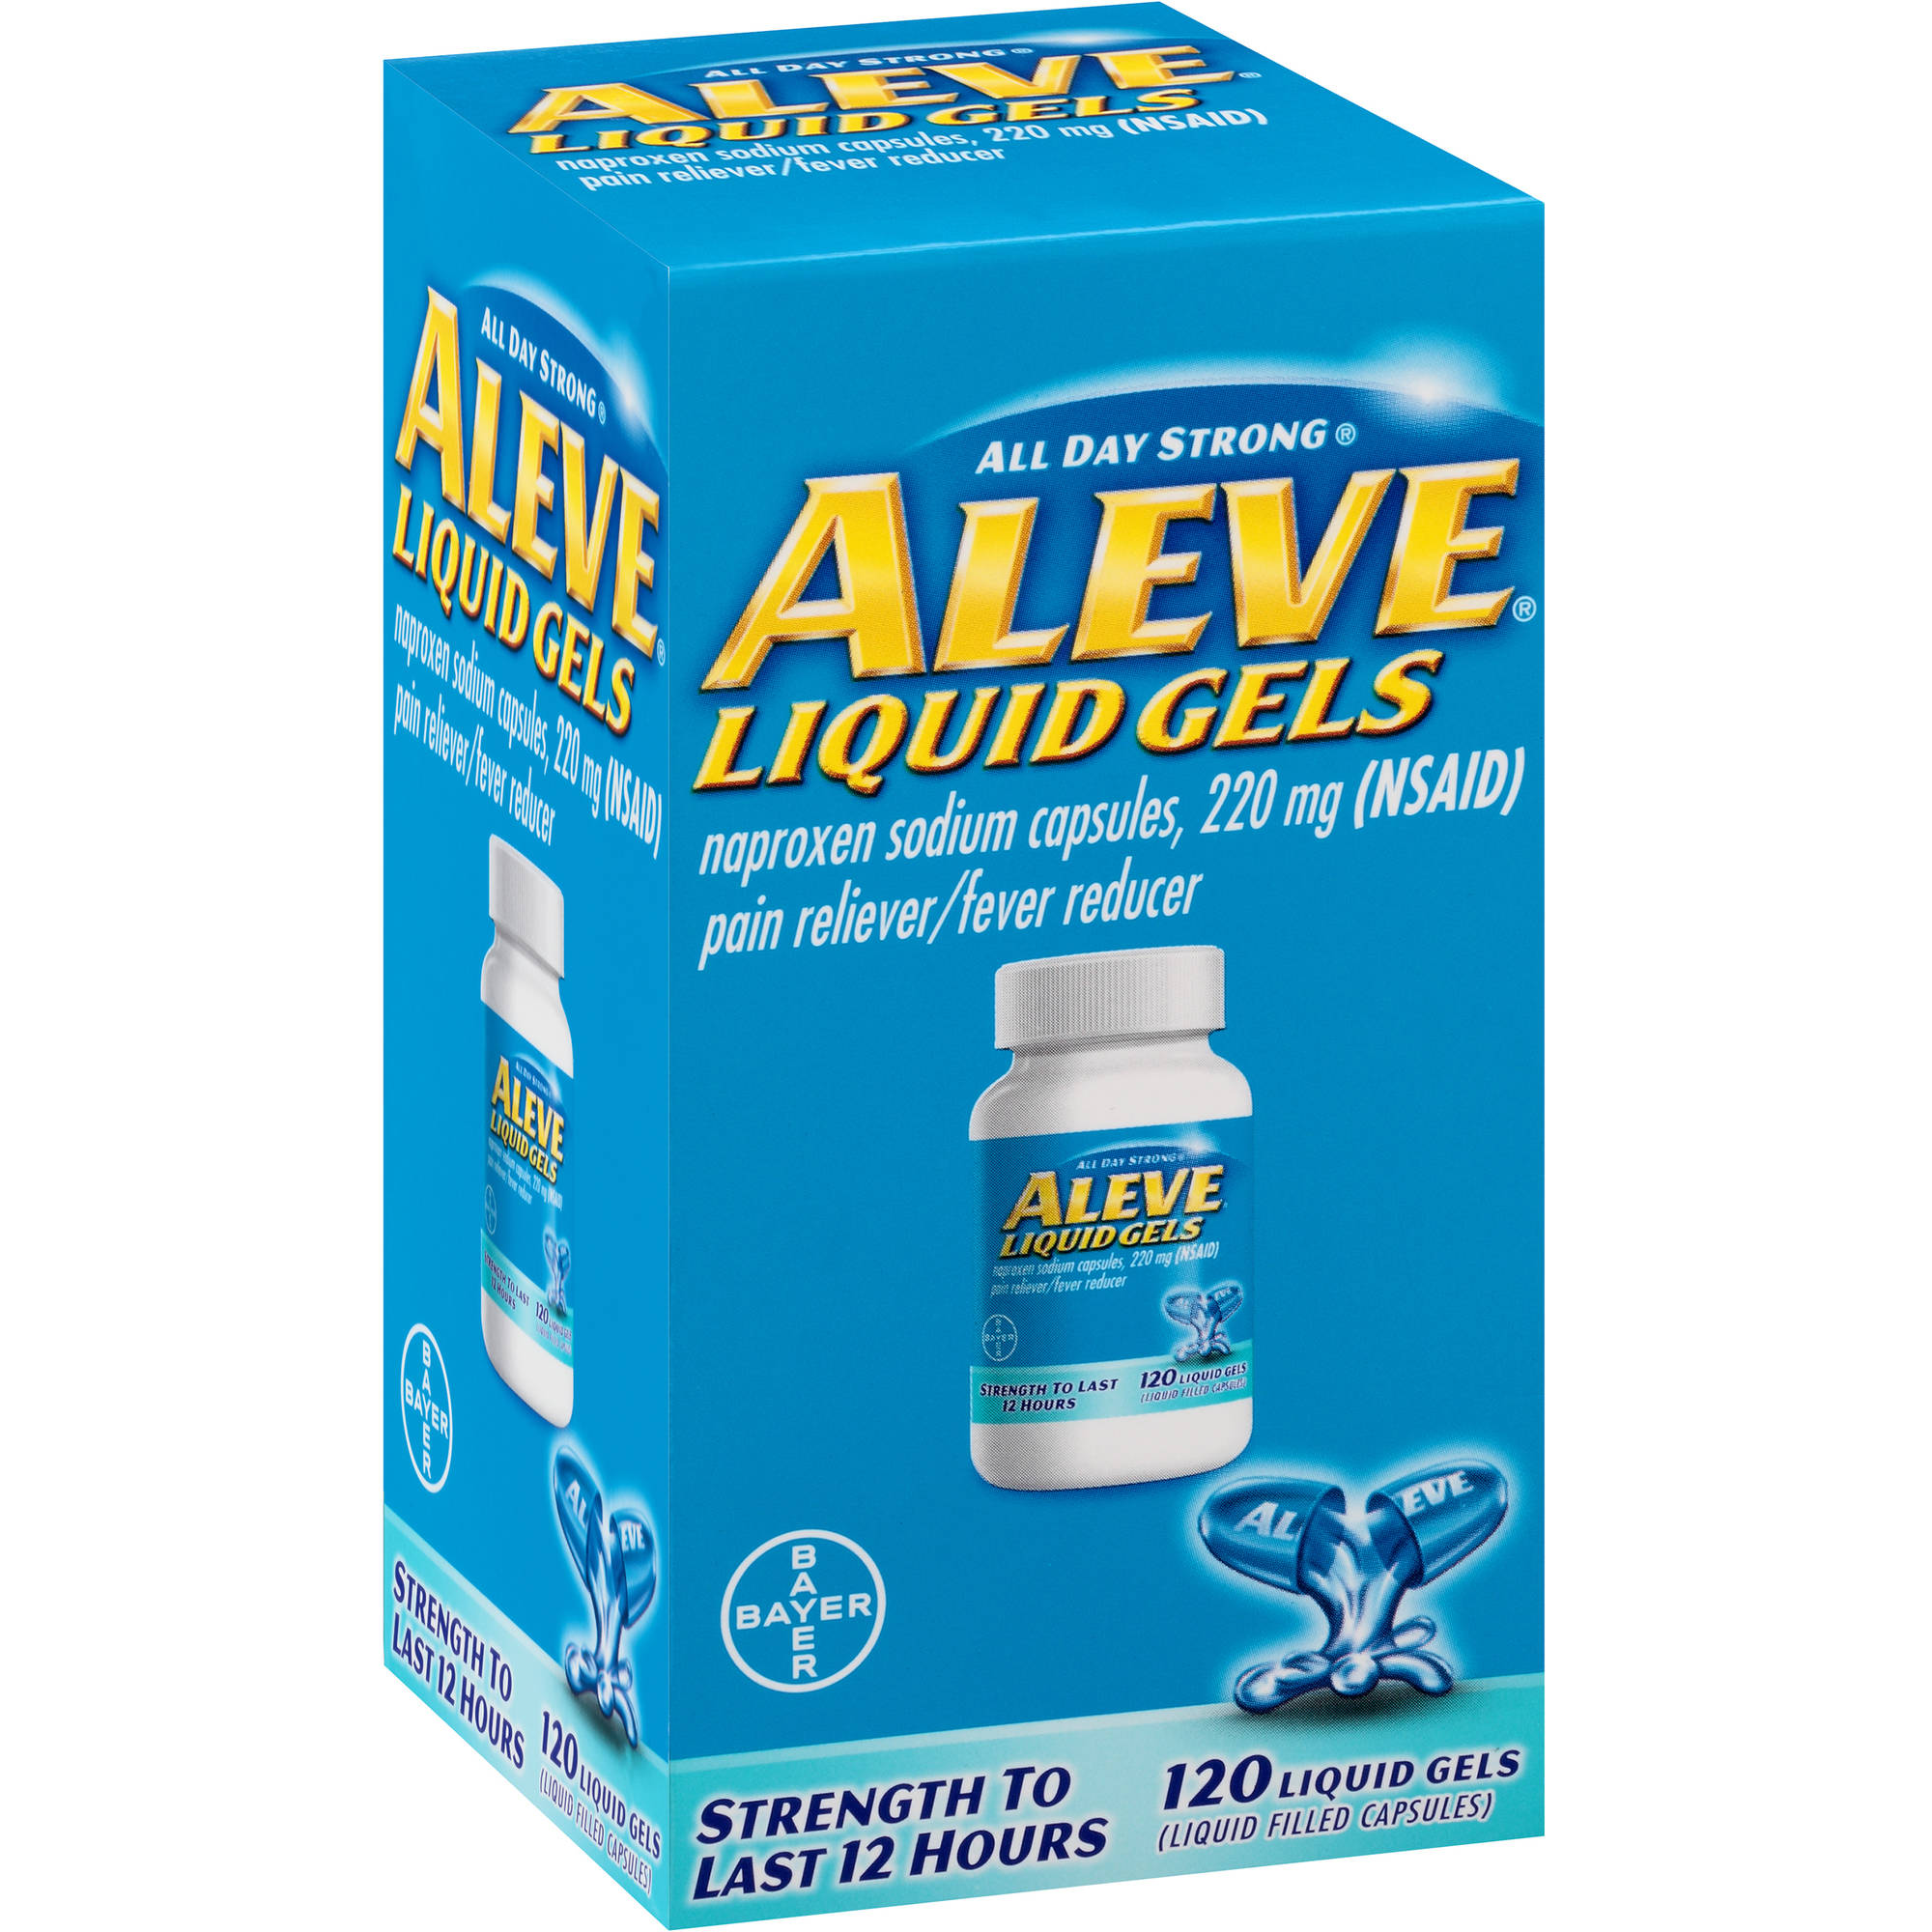 Aleve Pain Reliever/Fever Reducer Liquid Gels, 220mg, 120 count